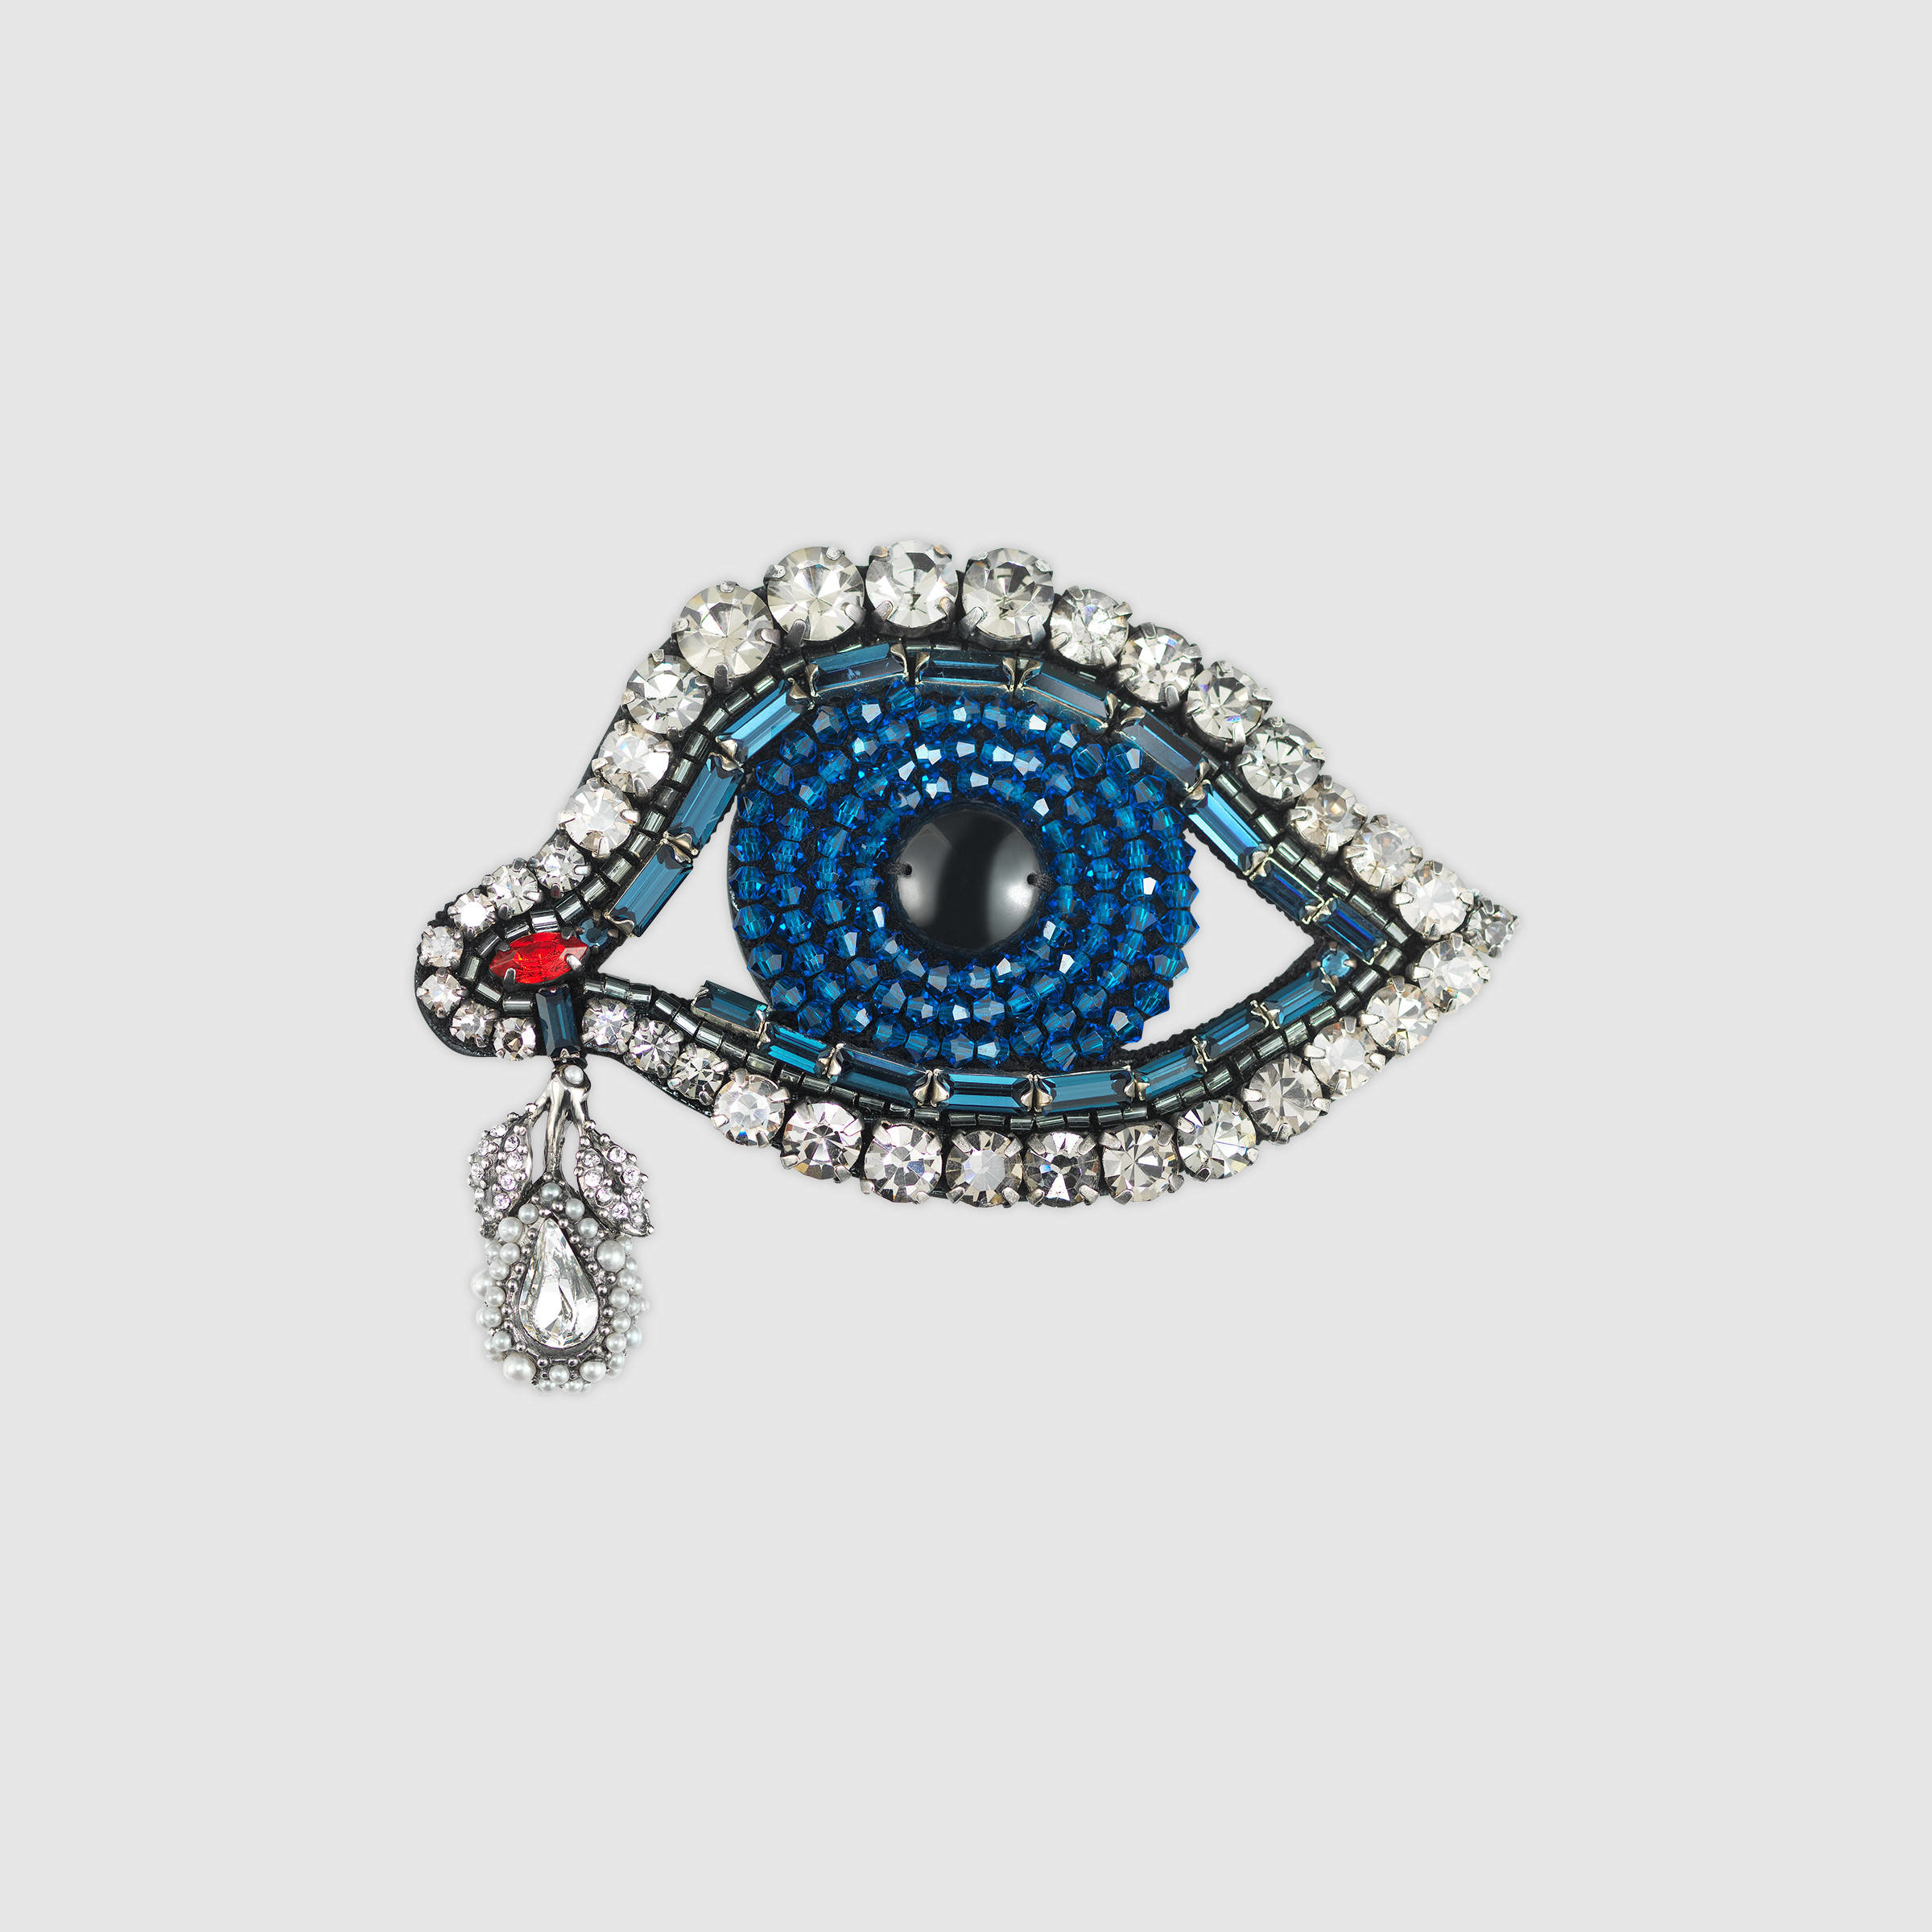 chanel product eye brooch red chloecouturefashions heart green silver pin blue i